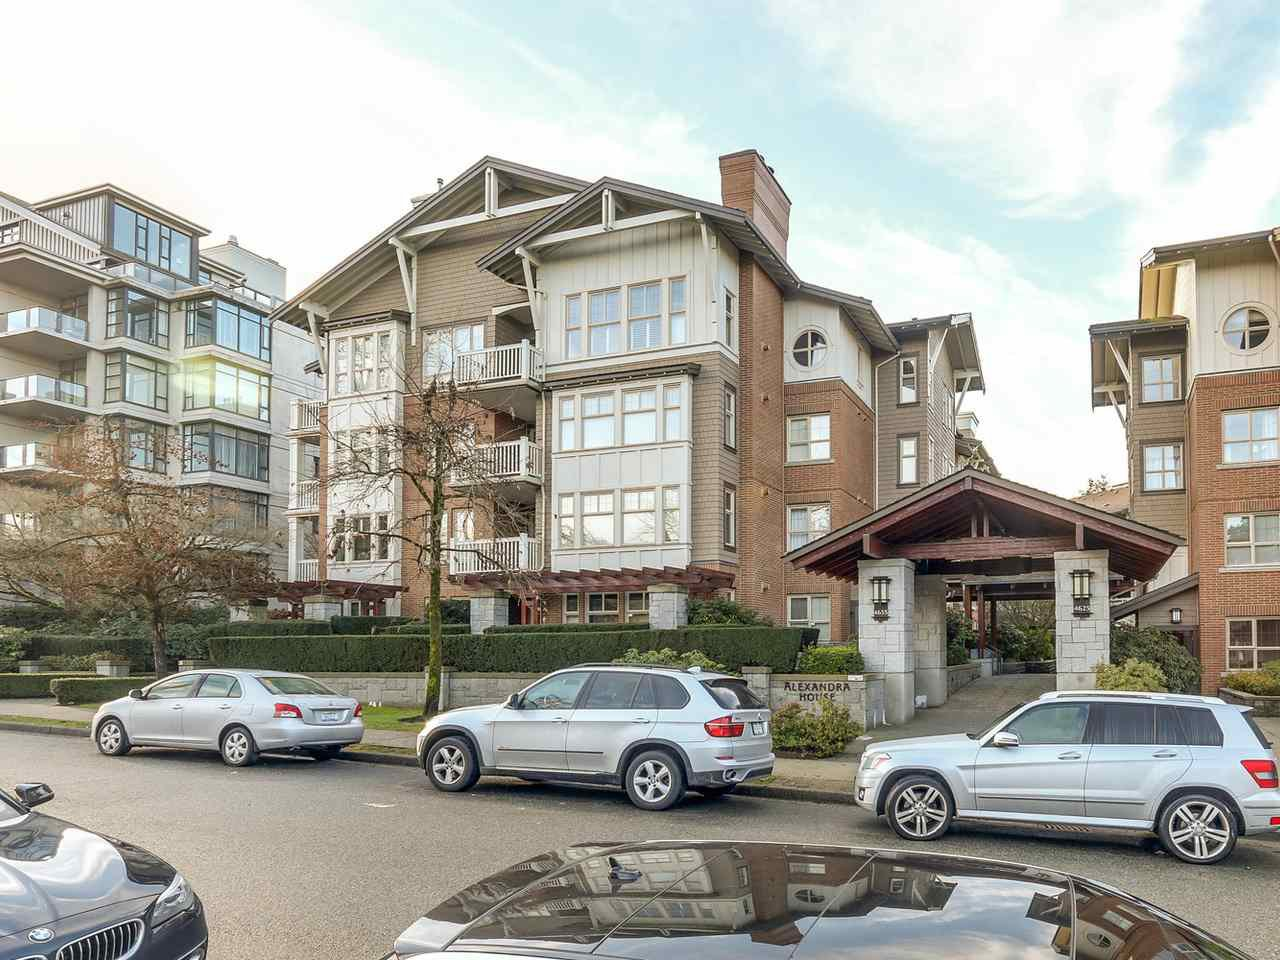 """Main Photo: 1306 4655 VALLEY Drive in Vancouver: Quilchena Condo for sale in """"ALEXANDRA HOUSE"""" (Vancouver West)  : MLS®# R2133417"""